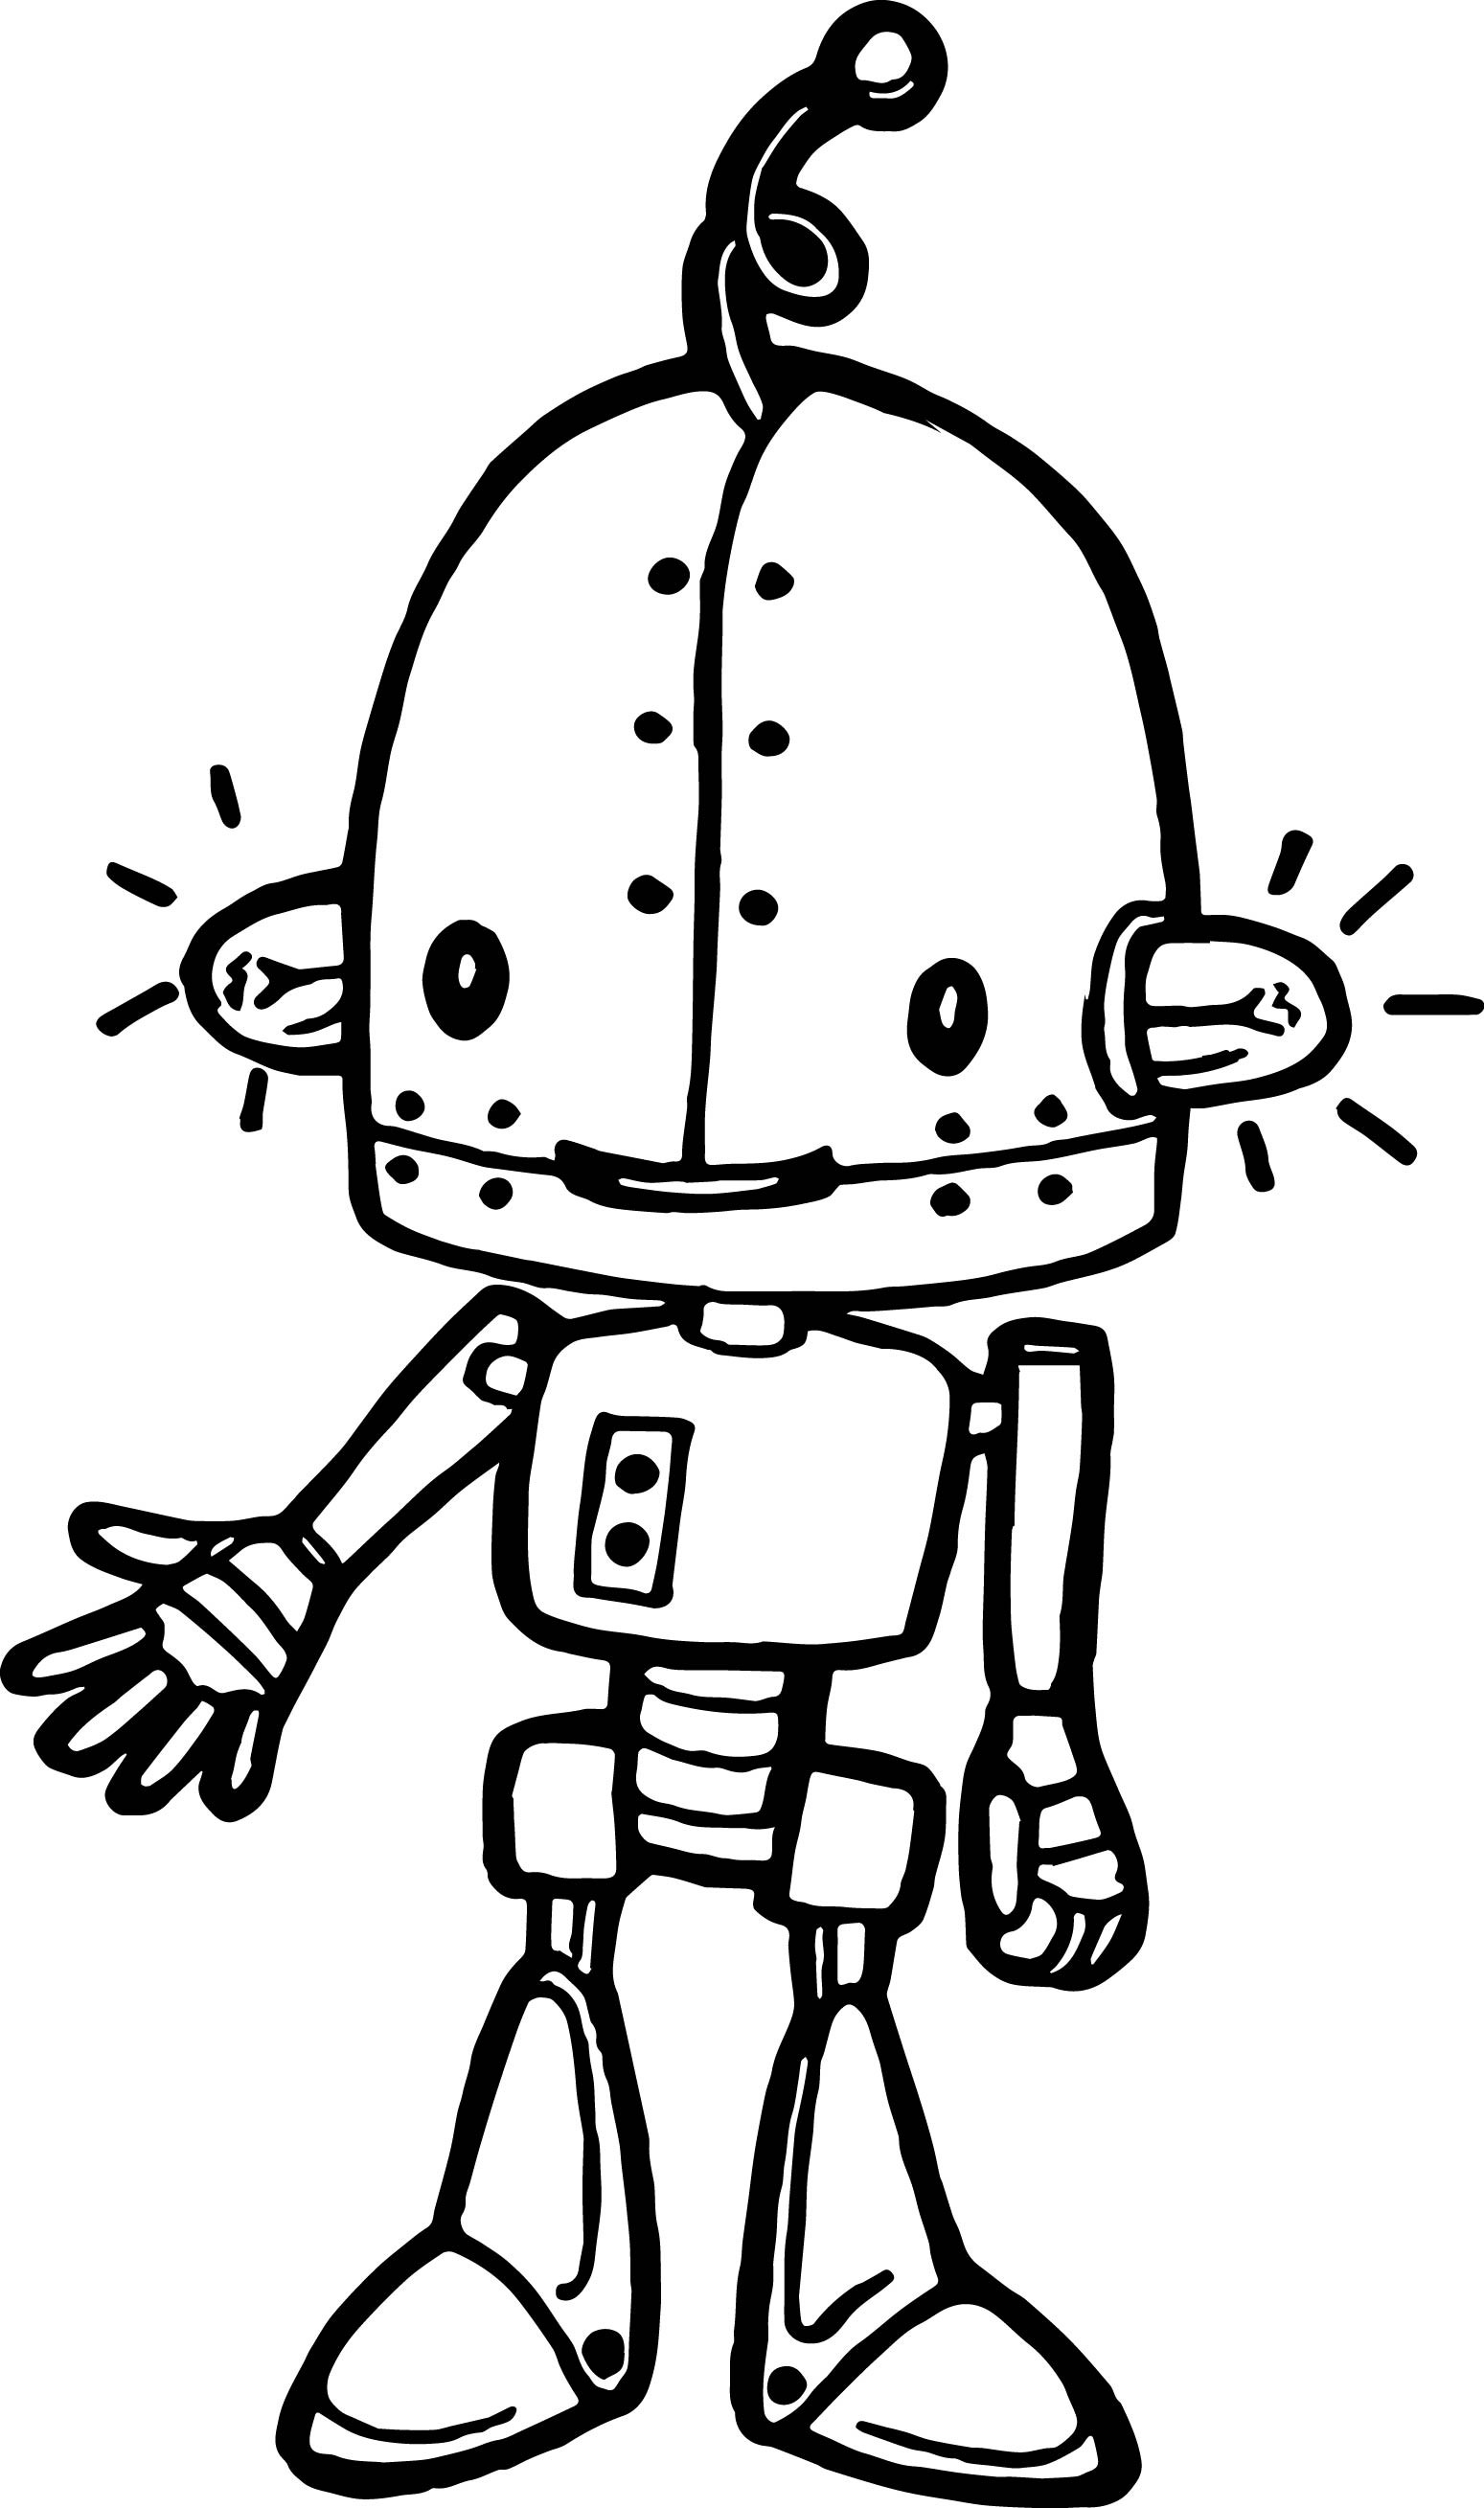 coloring robot free printable robot coloring pages for kids cool2bkids robot coloring 1 2